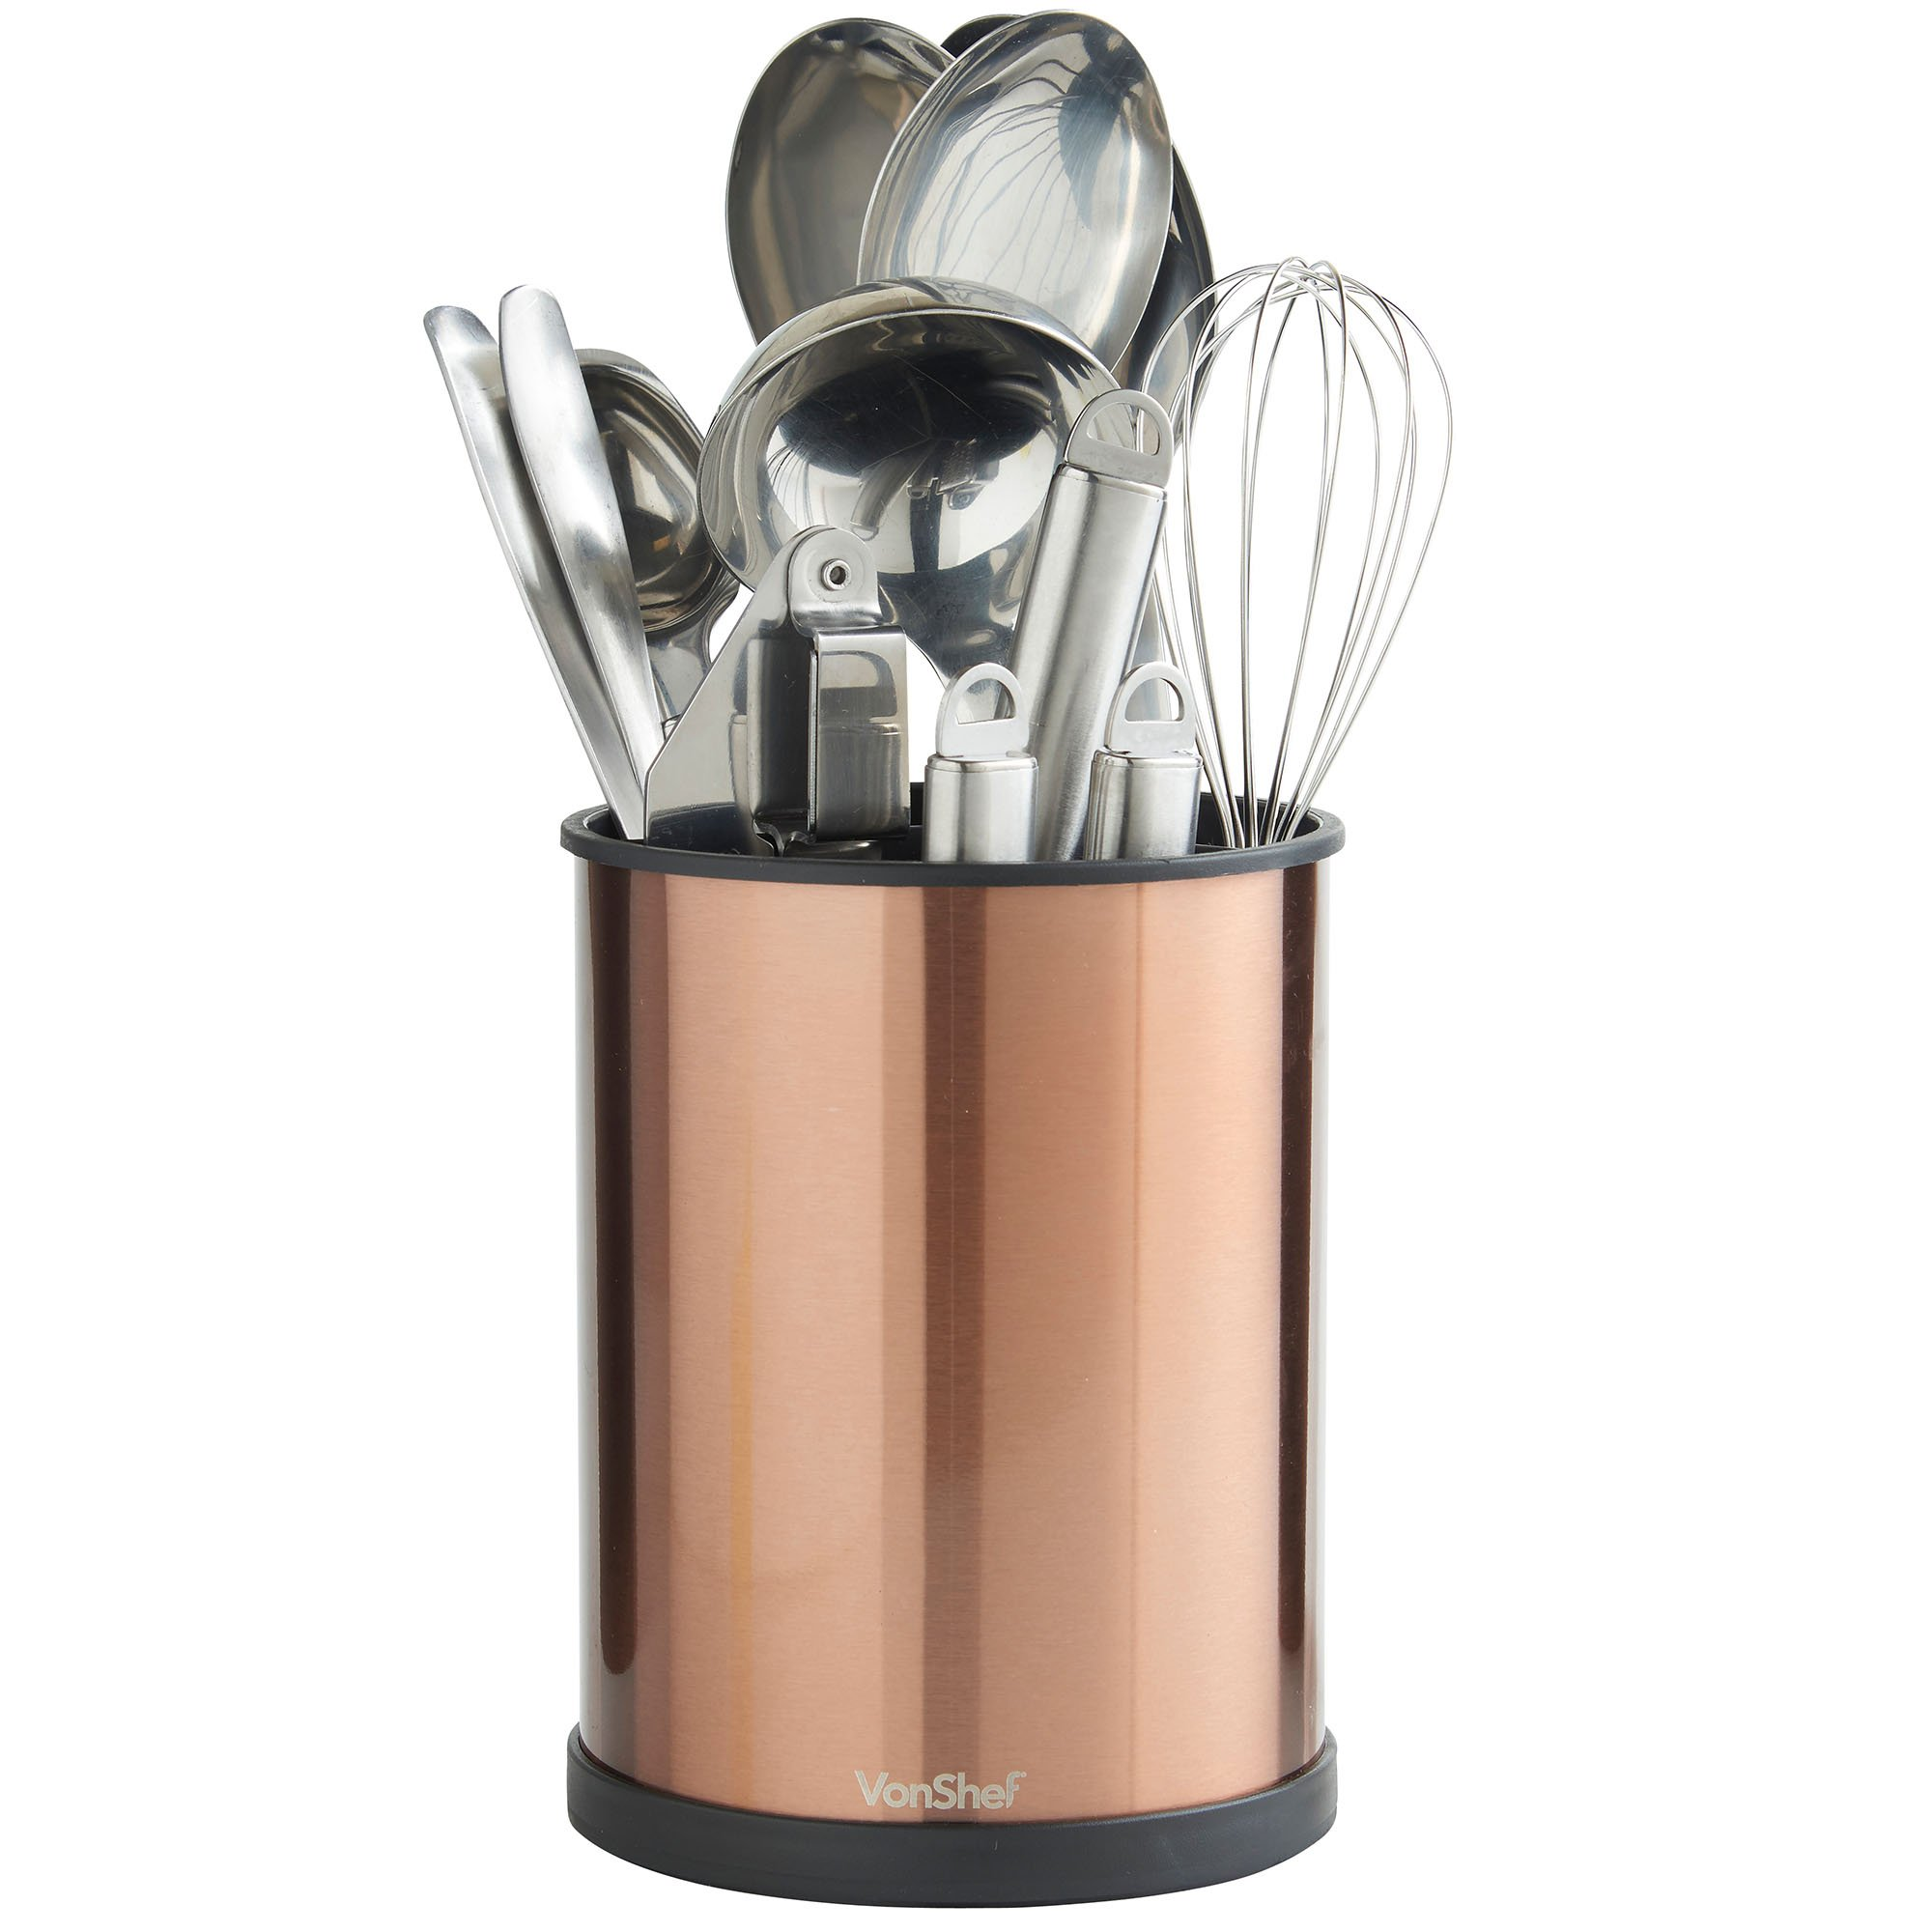 VonShef Copper Rotating Kitchen Utensil Holder Organizer Removable Insert Drain Holes, Stainless Steel, Height 7 Inches